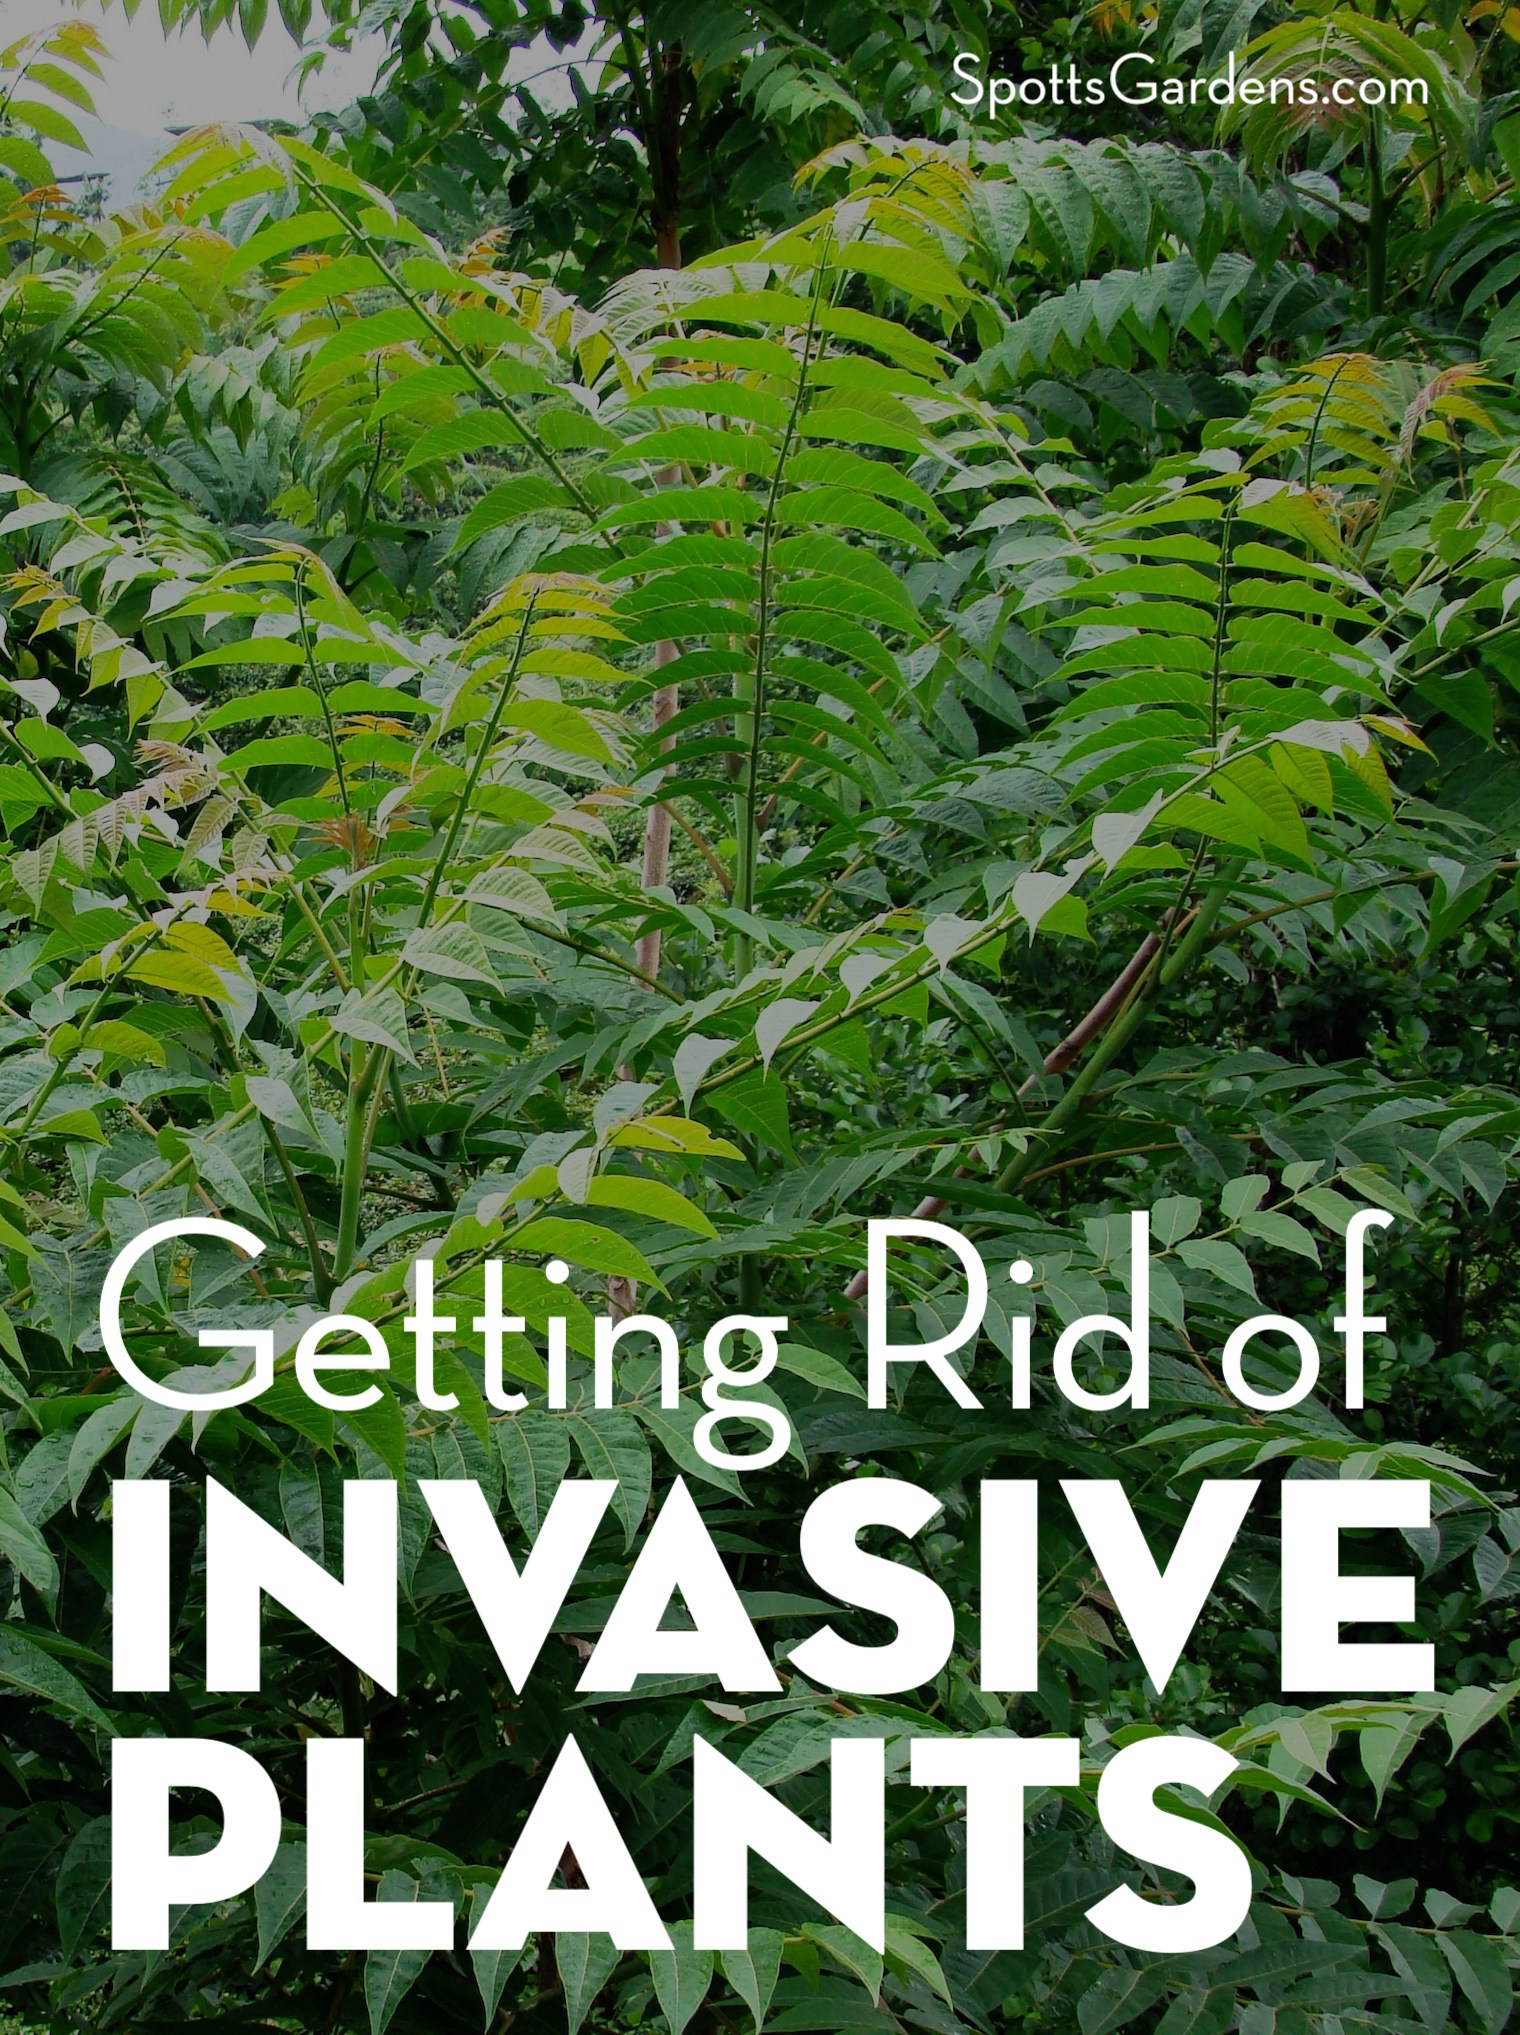 Getting Rid of Invasive Plants